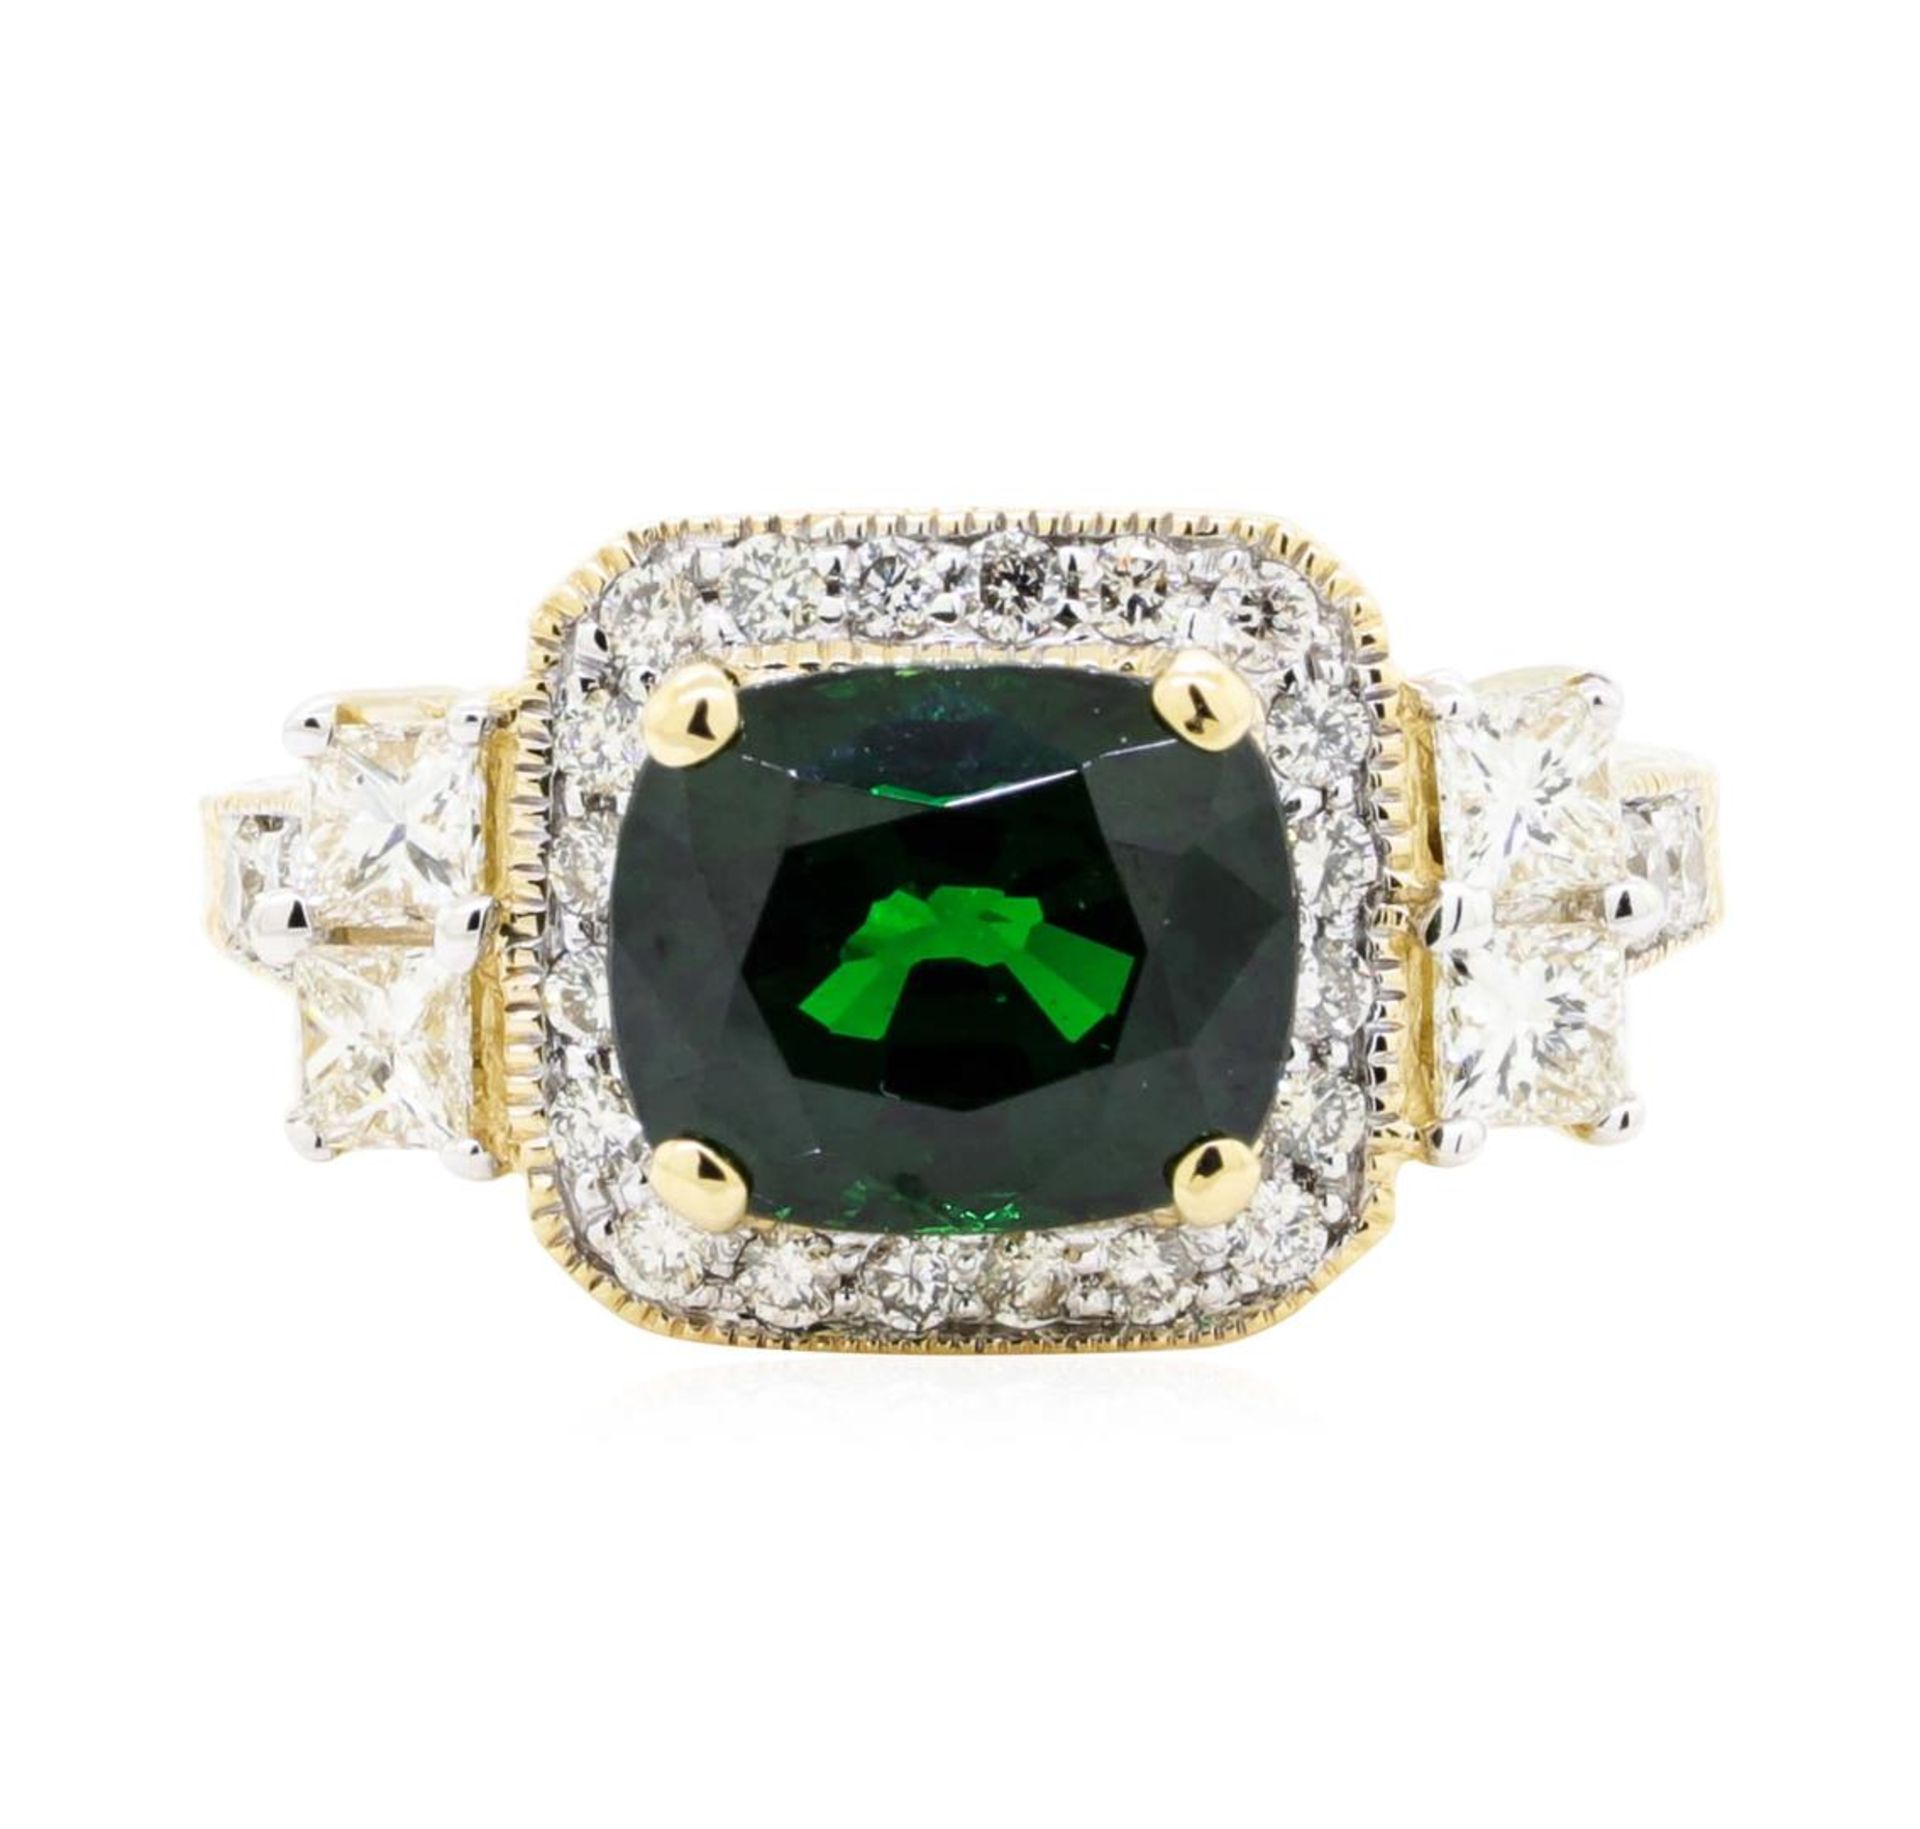 4.44 ctw Rectangular Cushion Mixed Tsavorite Garnet And Princess Cut Diamond Rin - Image 2 of 5